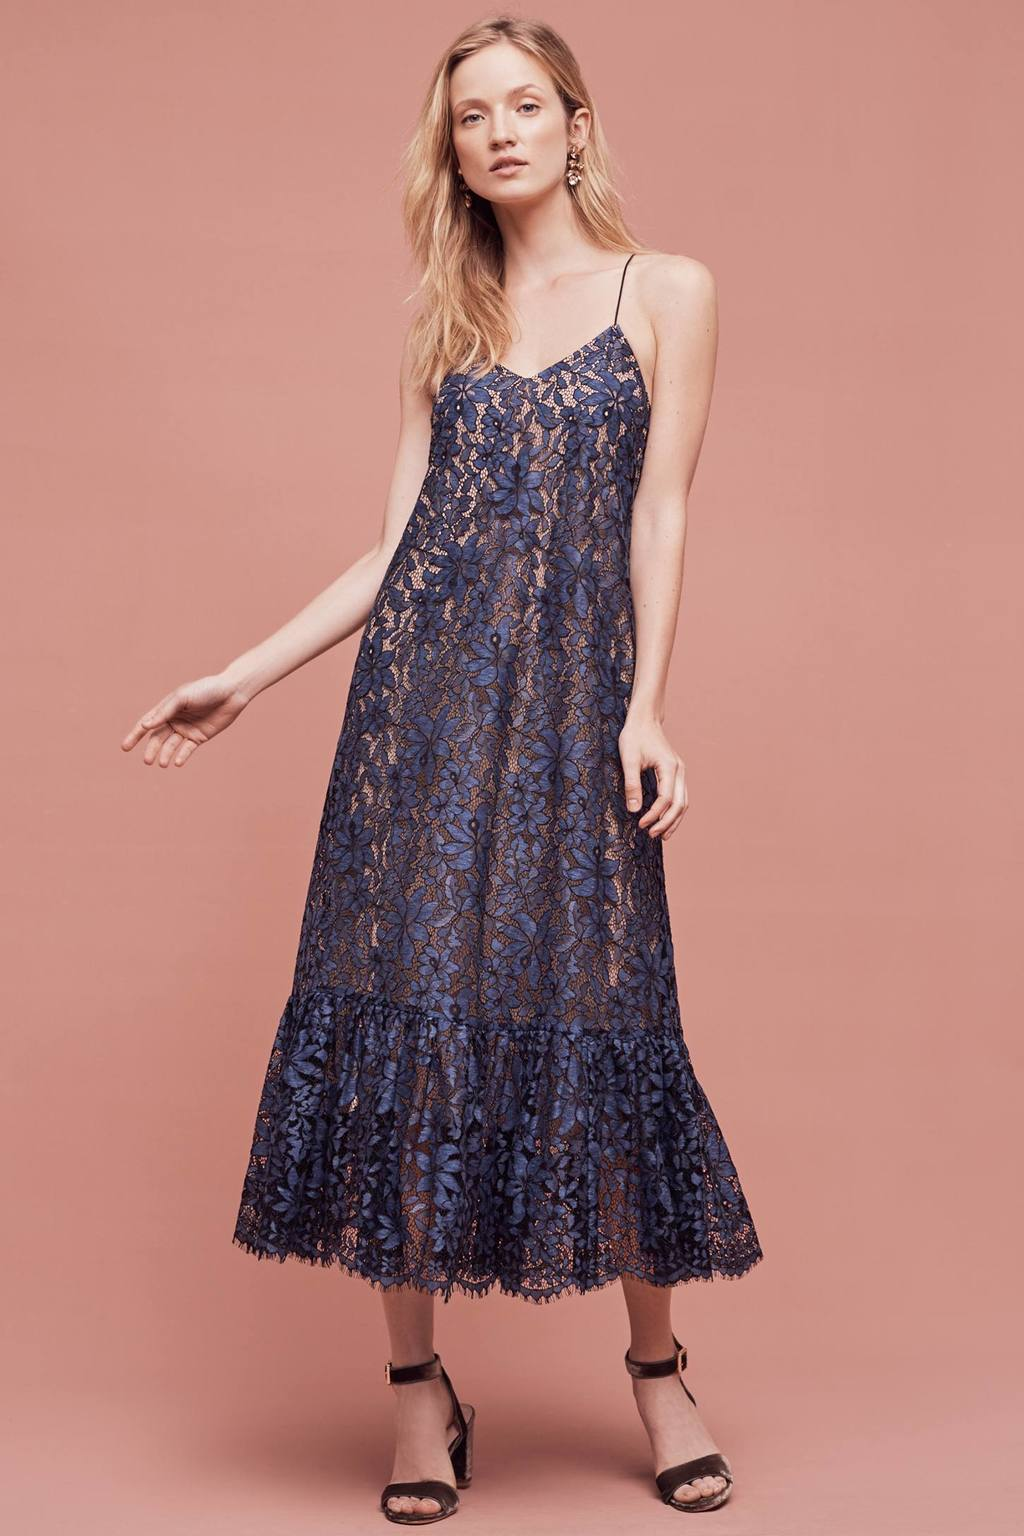 Celestial Lace Maxi Dress - neckline: low v-neck; sleeve style: spaghetti straps; style: maxi dress; length: ankle length; predominant colour: navy; secondary colour: nude; occasions: evening; fit: soft a-line; fibres: polyester/polyamide - 100%; sleeve length: sleeveless; texture group: lace; pattern type: fabric; pattern: patterned/print; season: a/w 2016; wardrobe: event